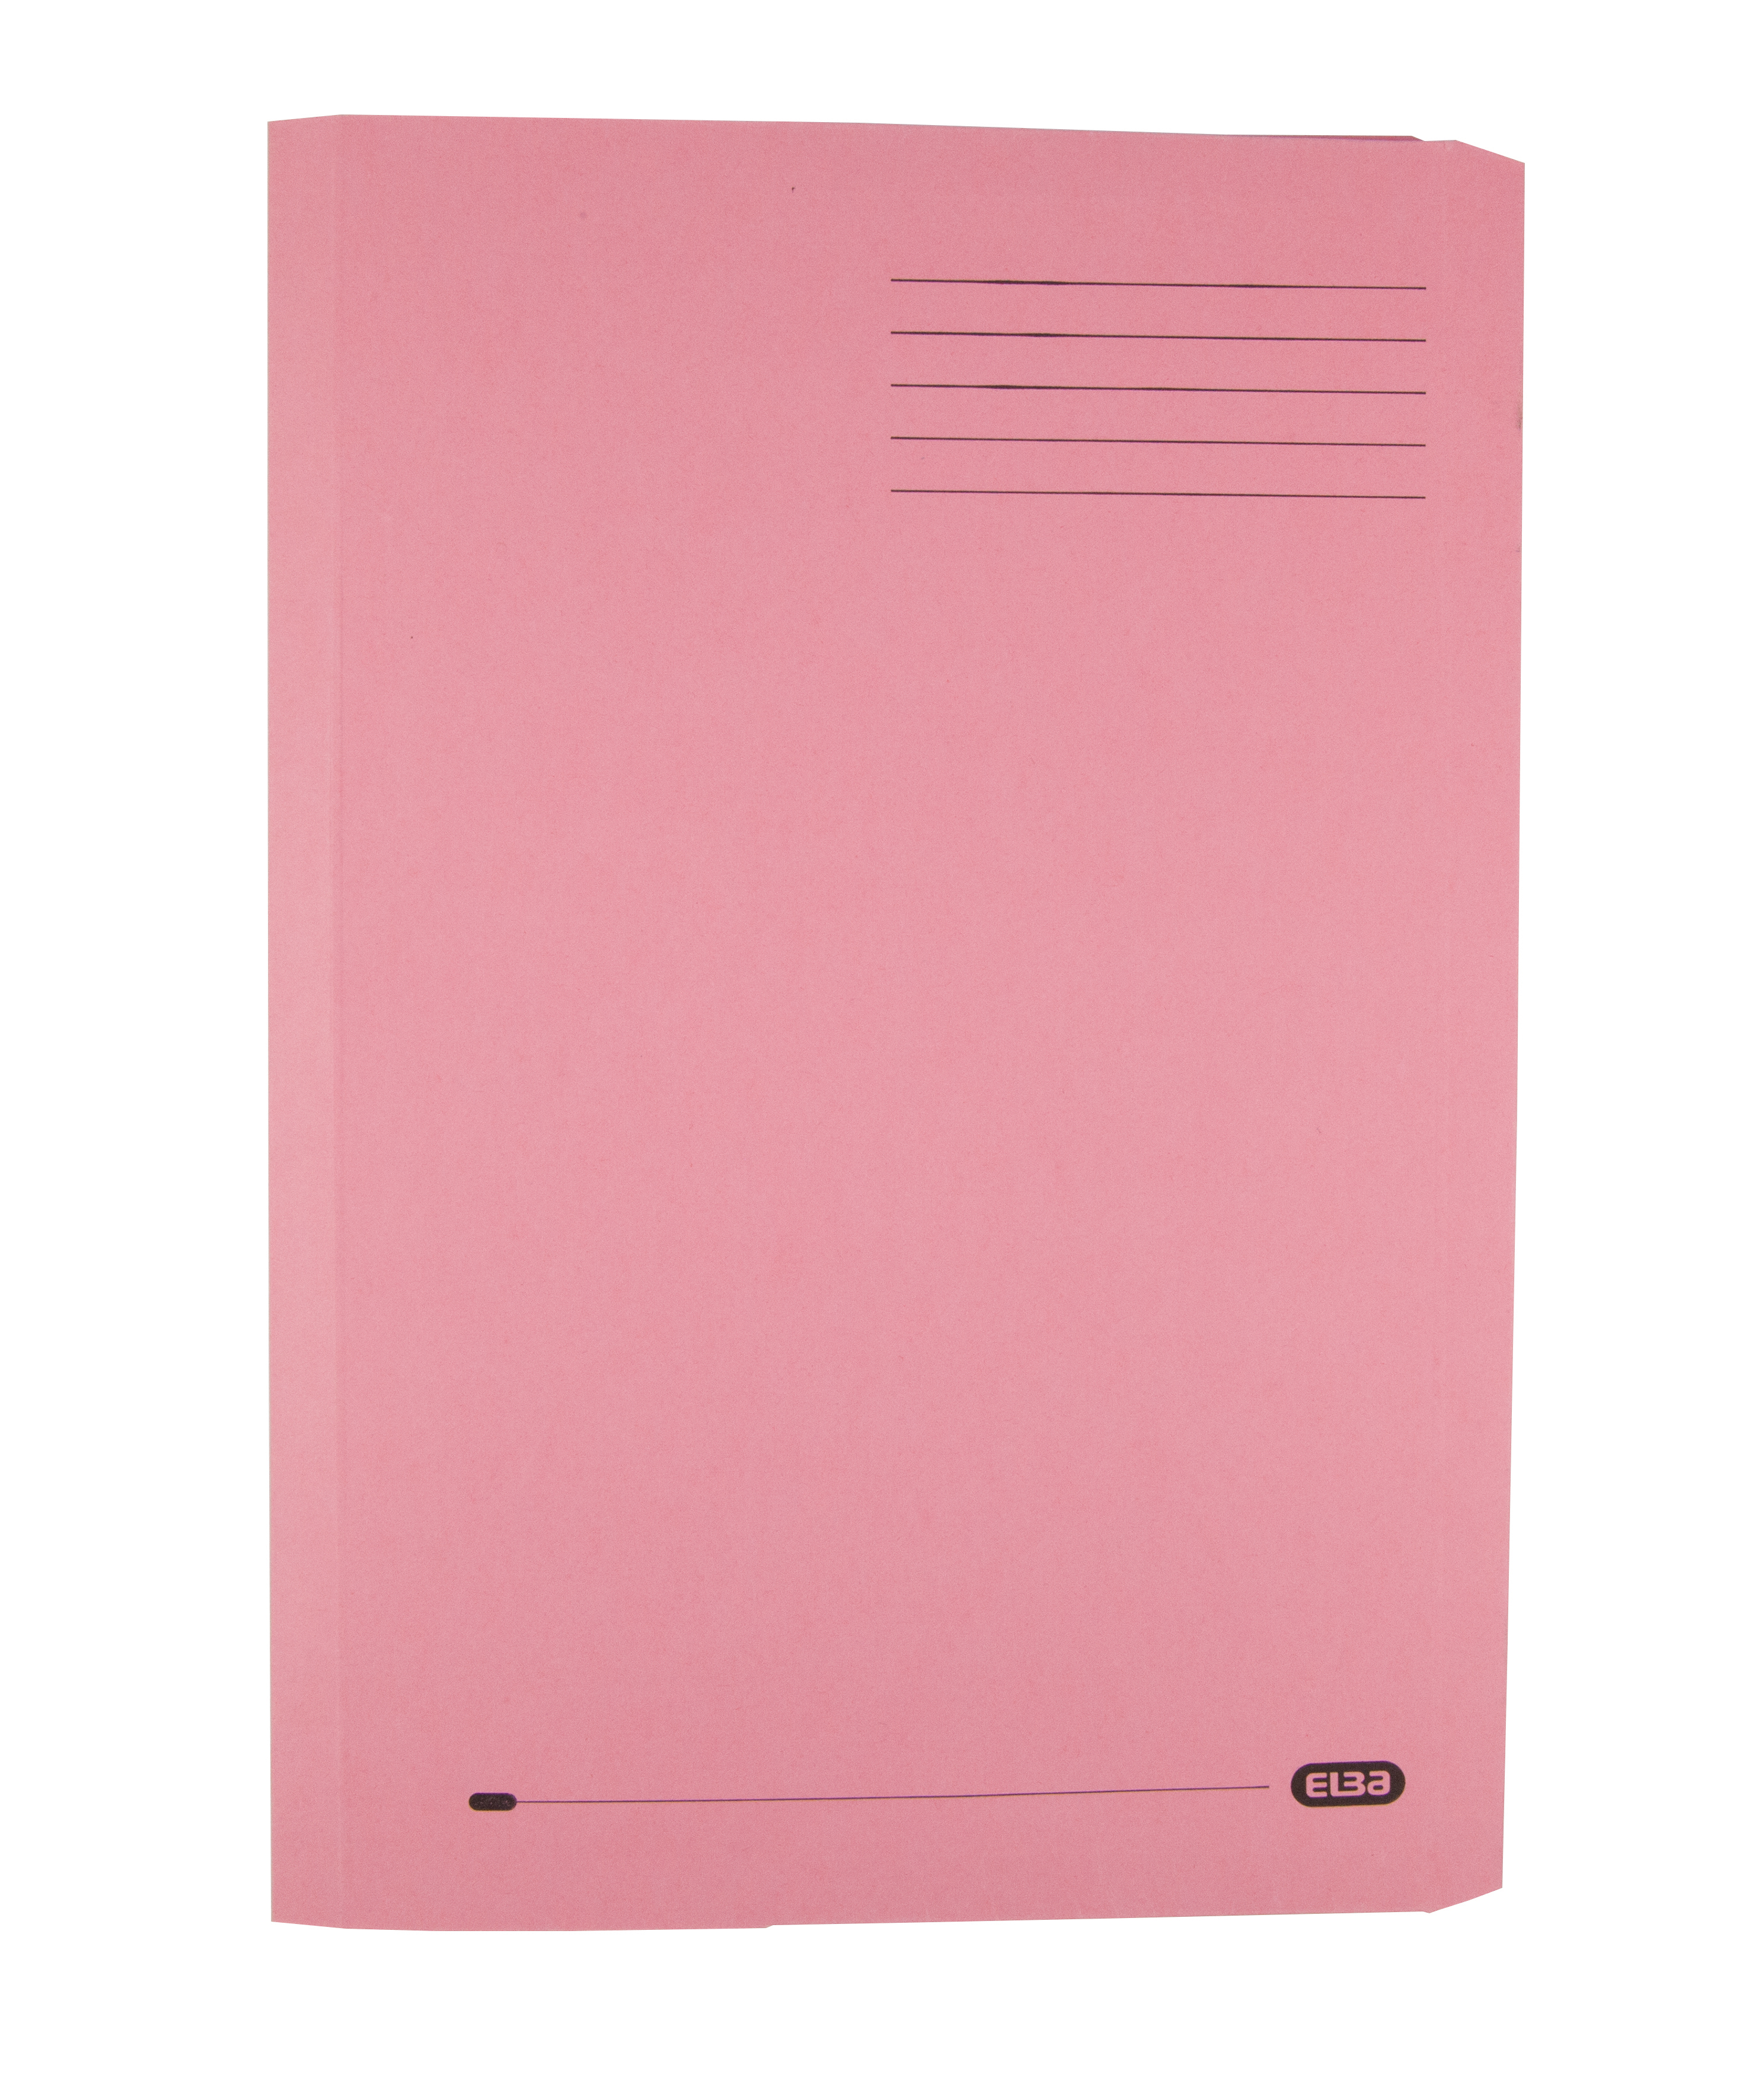 Elba Clifton Flat Bar Pocket (Rear) File 285gsm Capacity 50mm Foolscap Pink Ref 100090322 [Pack 25]